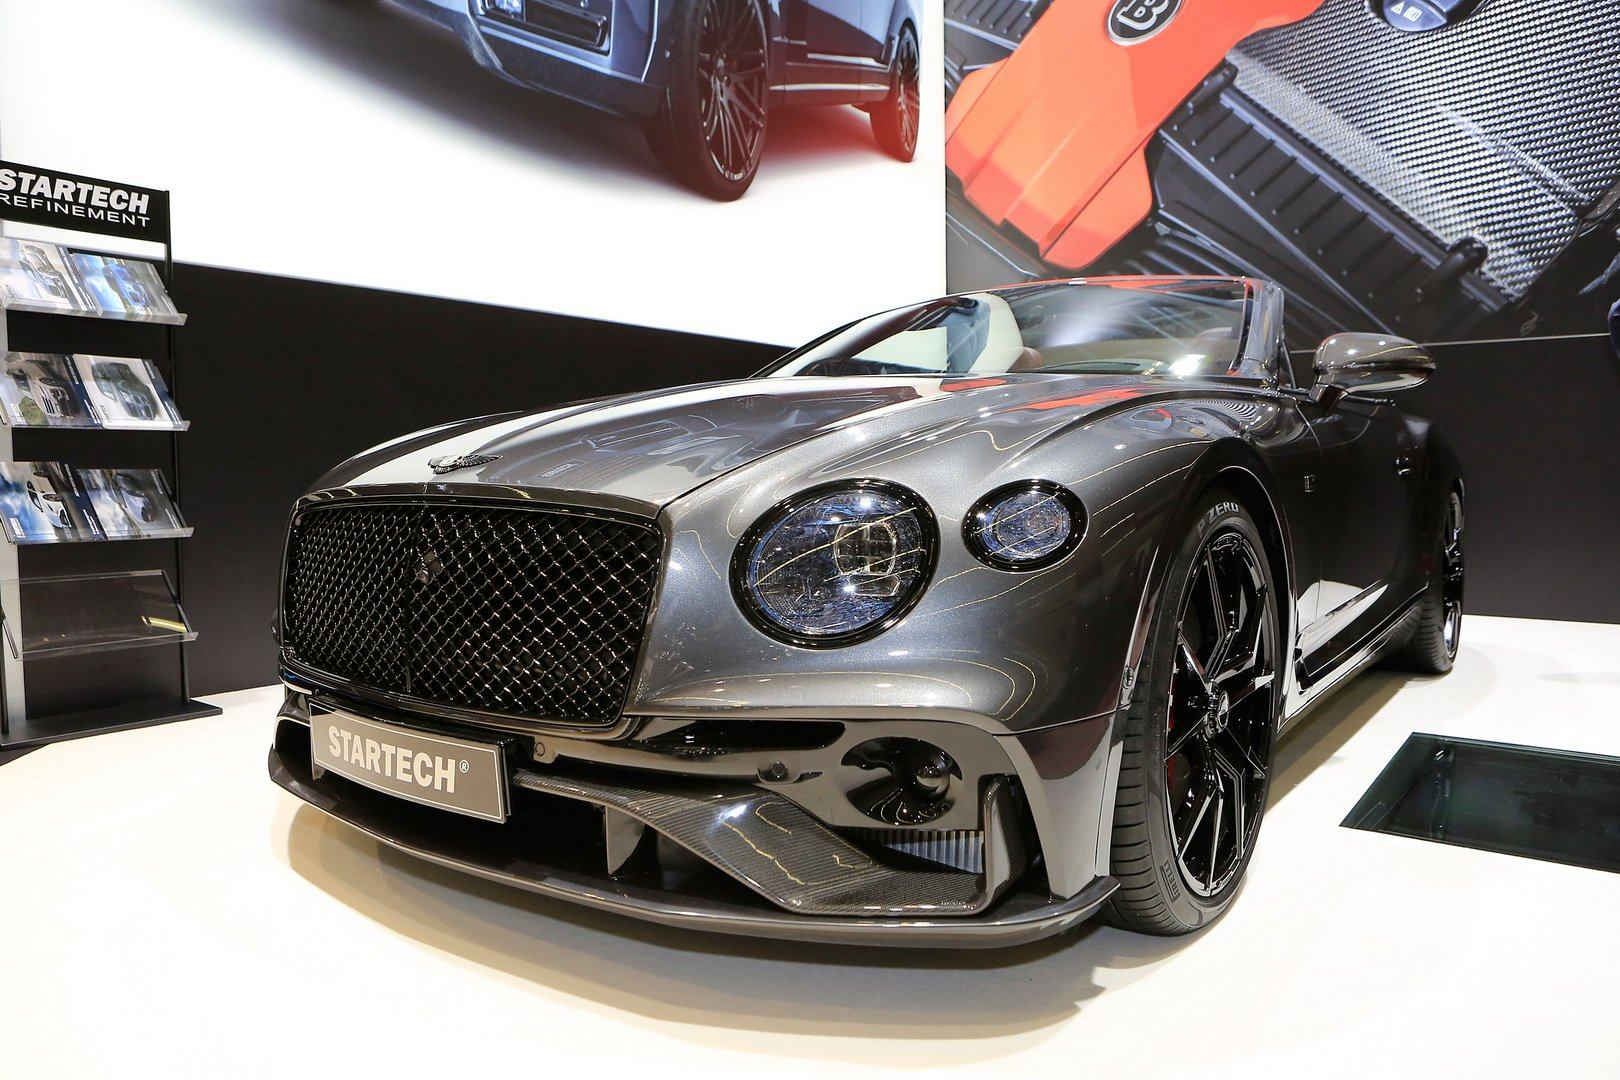 Bentley Continental GTC modified by STARTECH